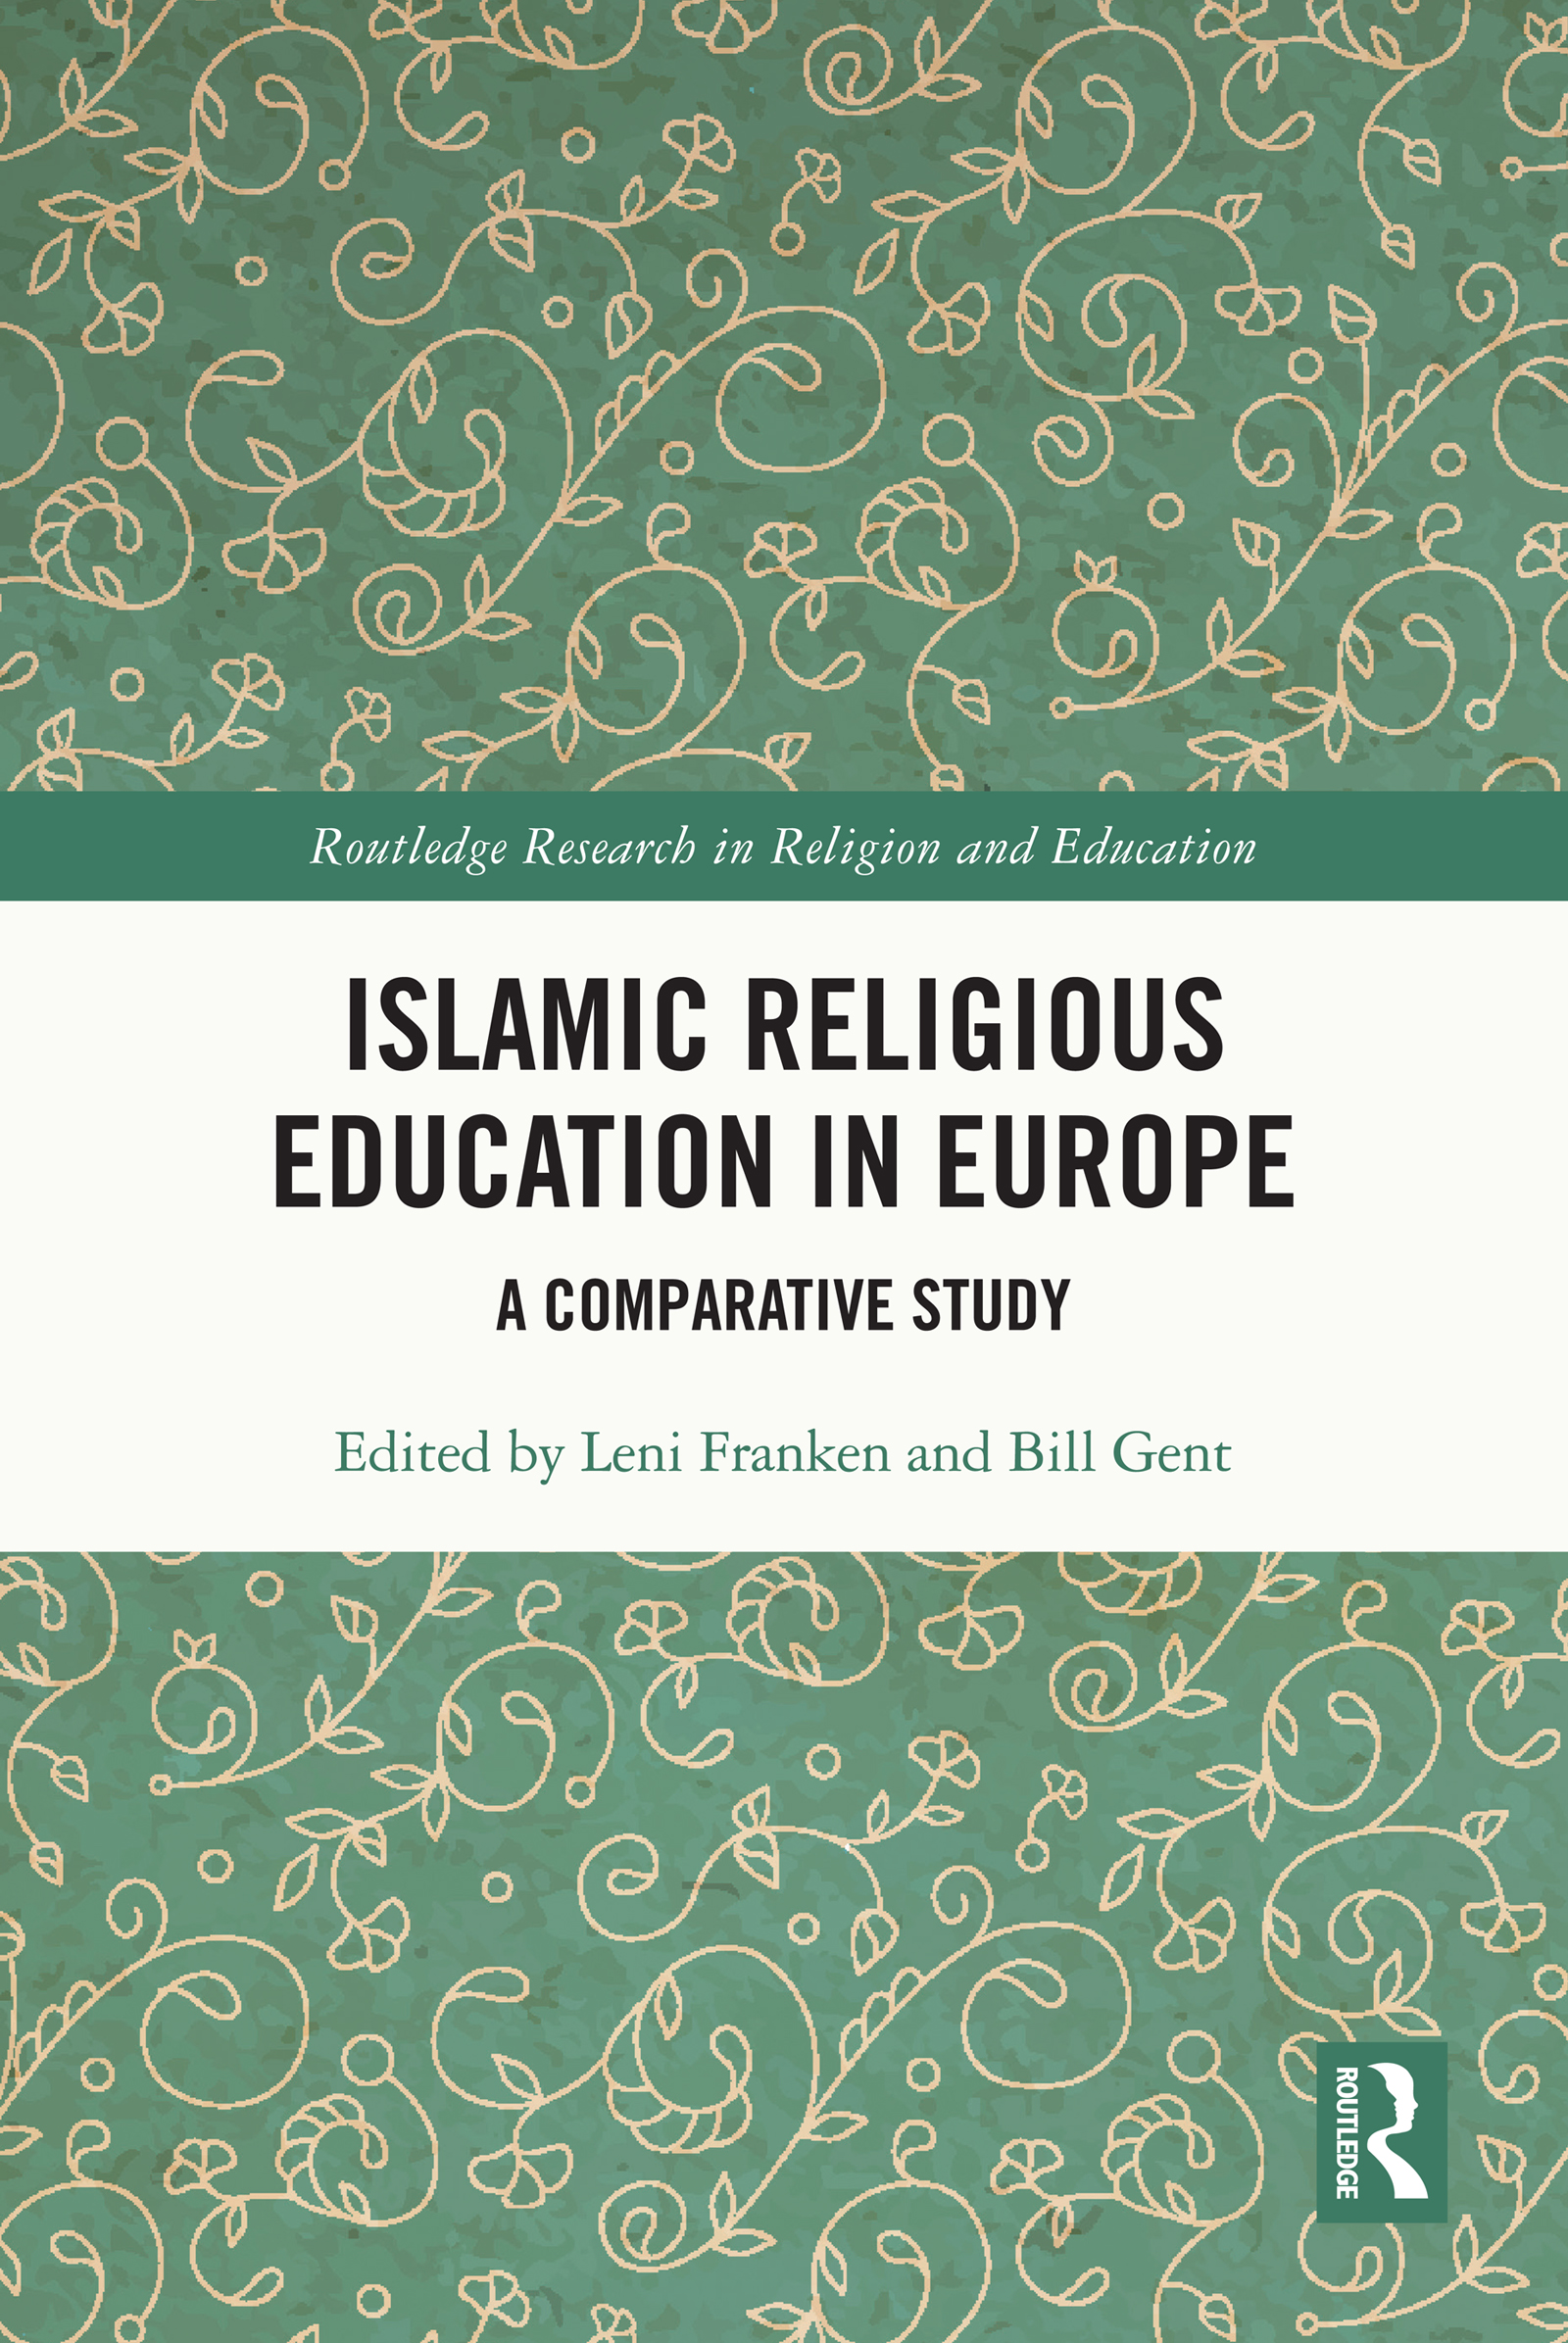 Islamic Religious Education in Europe